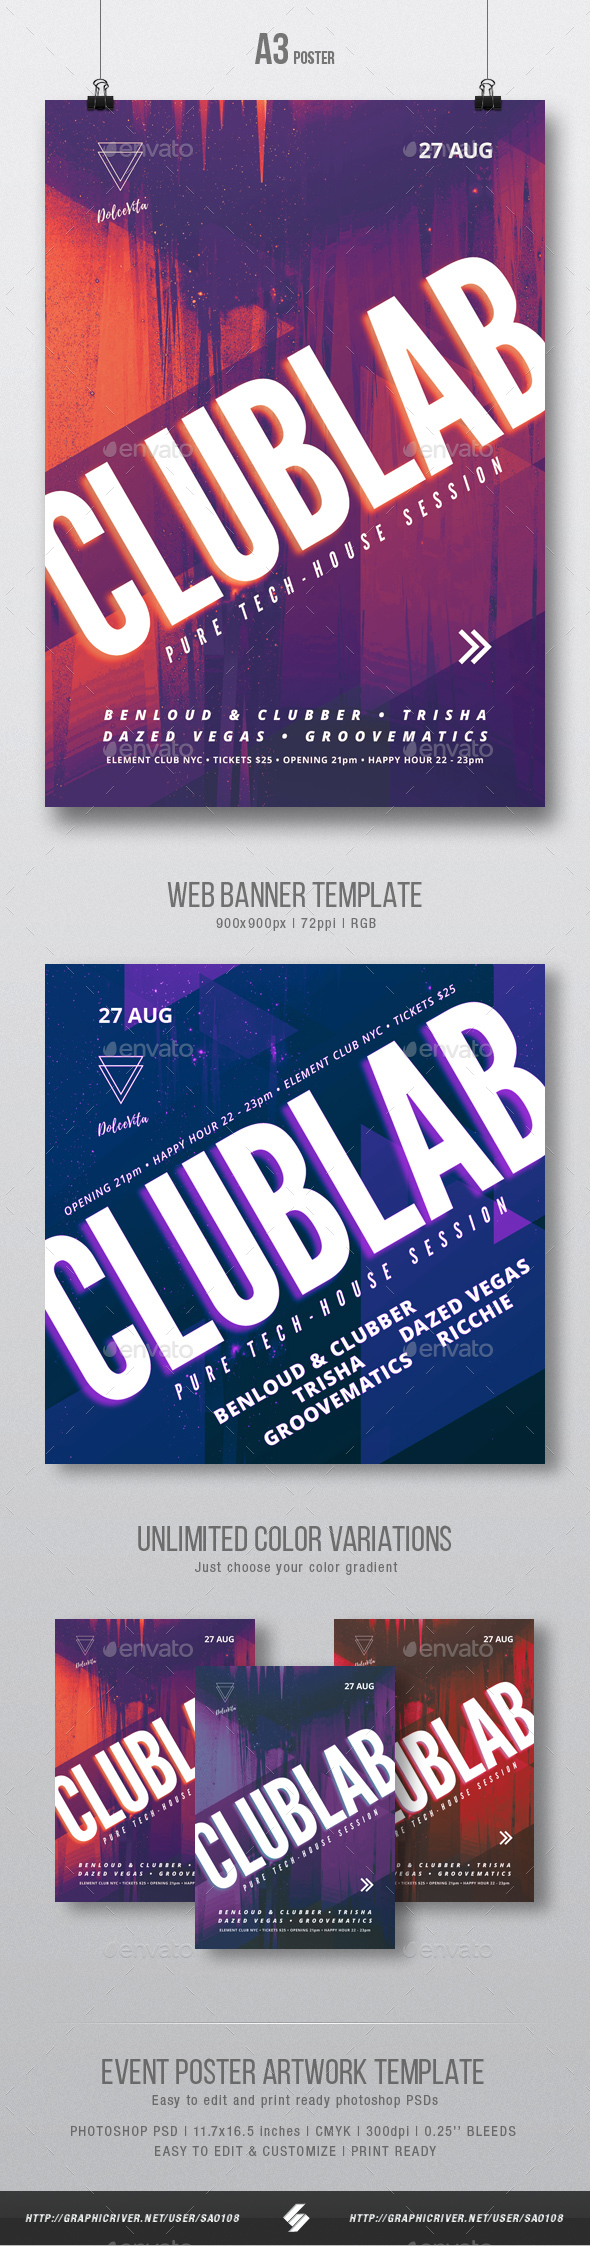 Clublab - Club Party Flyer / Poster Artwork Template A3 - Clubs & Parties Events